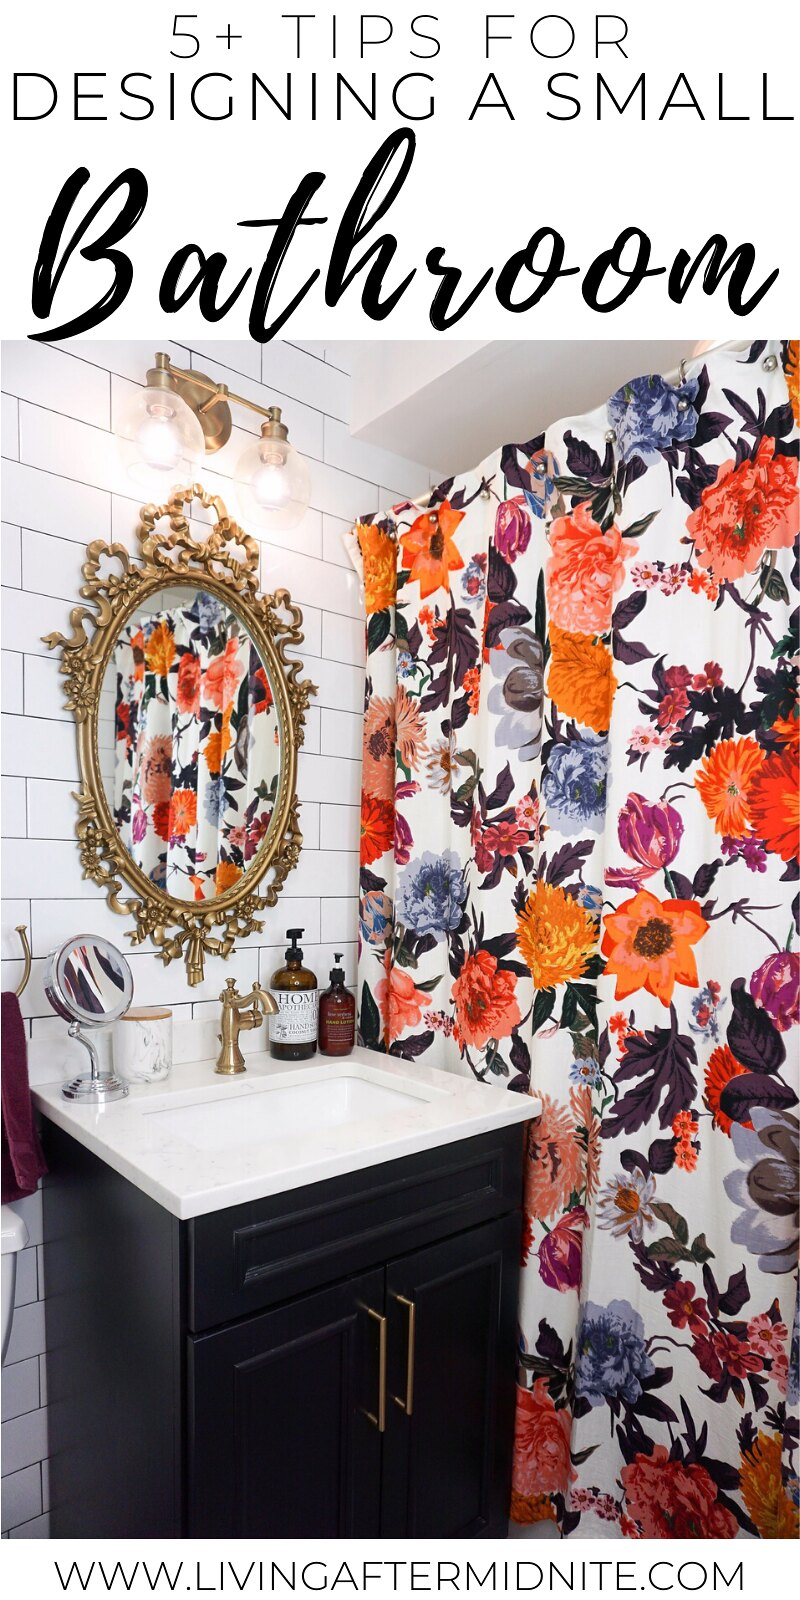 5 Practical Tips for Designing a Small Bathroom | Eclectic Boho Colorful Small Bathroom Inspiration